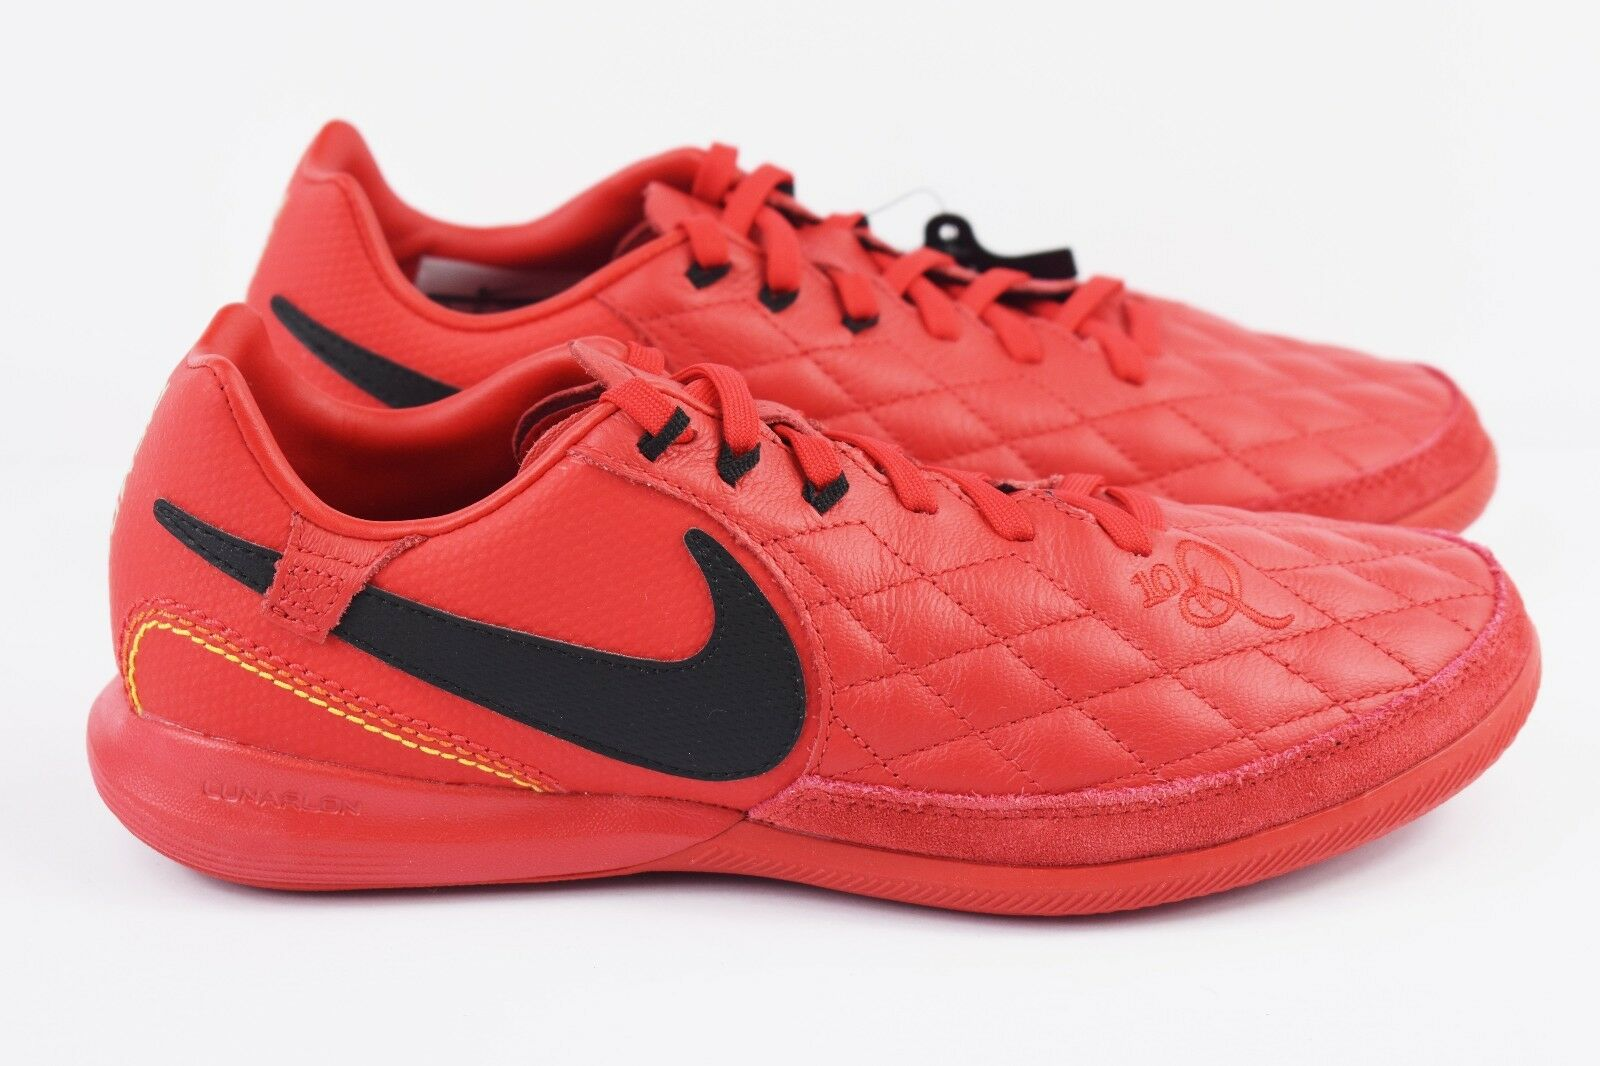 69b67764cecdb Nike Lunar LegendX 7 Pro Pro Pro 10R IC Mens Size 6.5 shoes Red Ronaldinho  AQ2211 ...